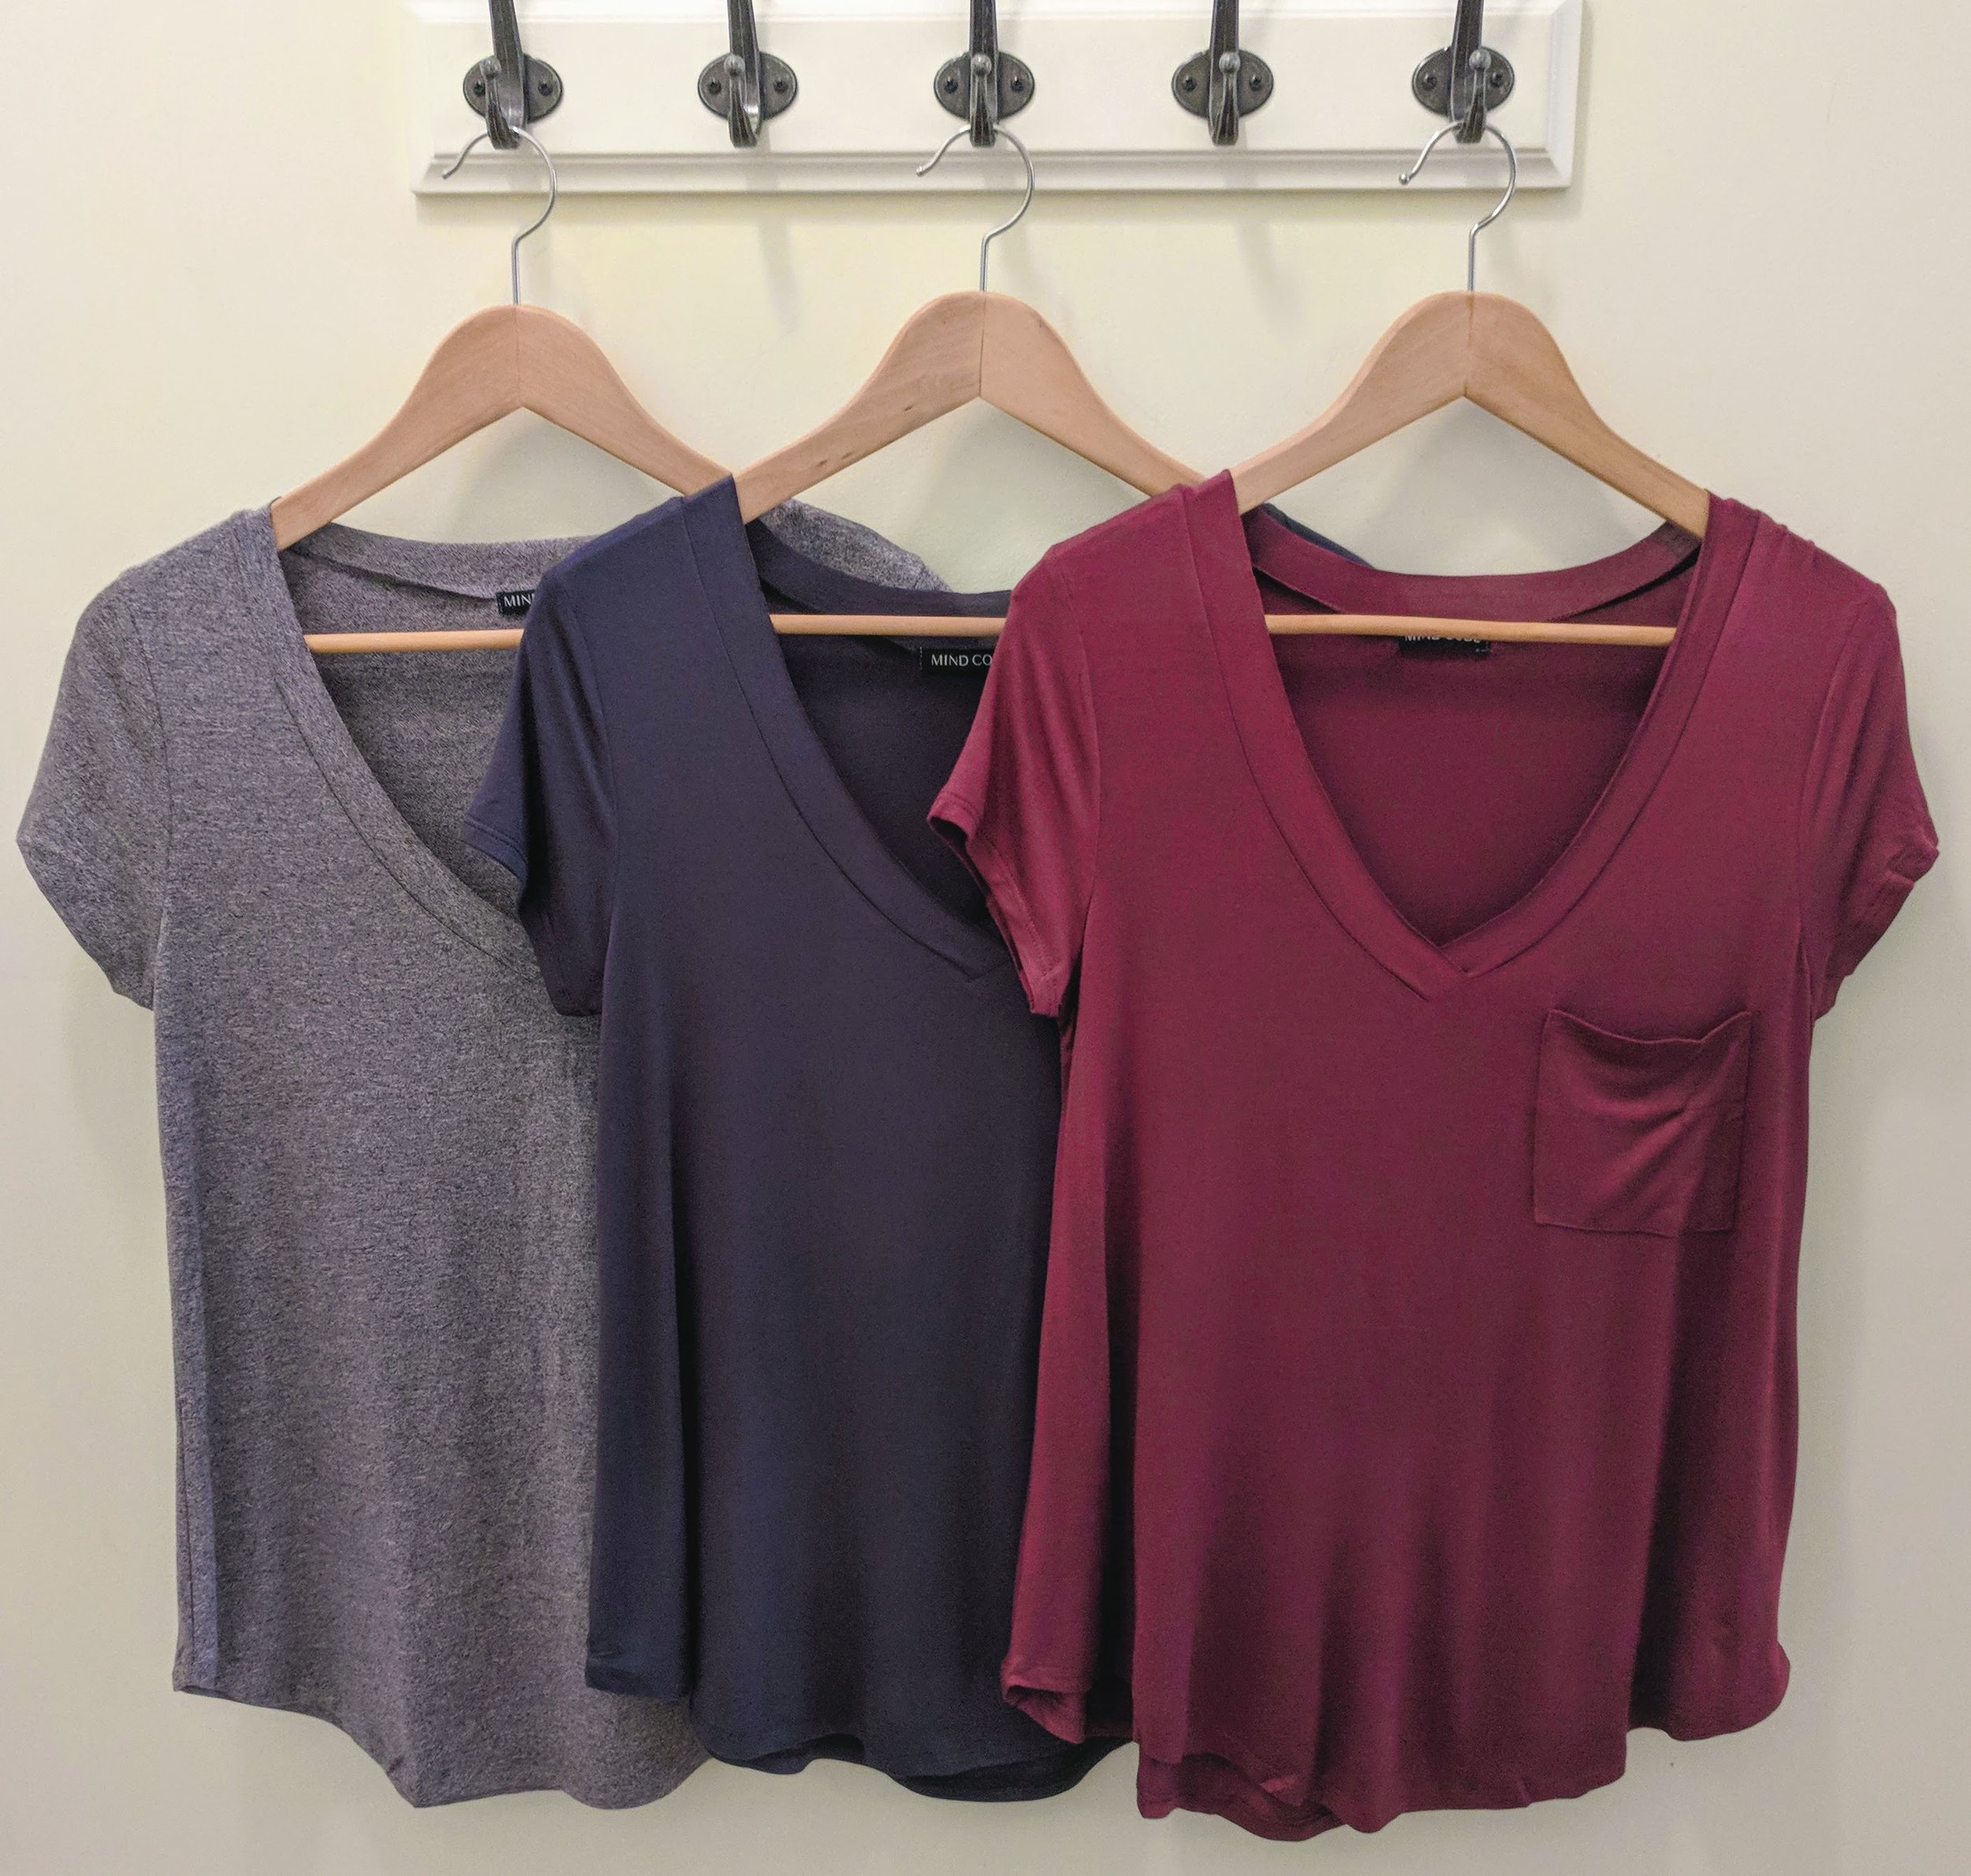 Orchid, Pine and Grey v-neck t-shirts.